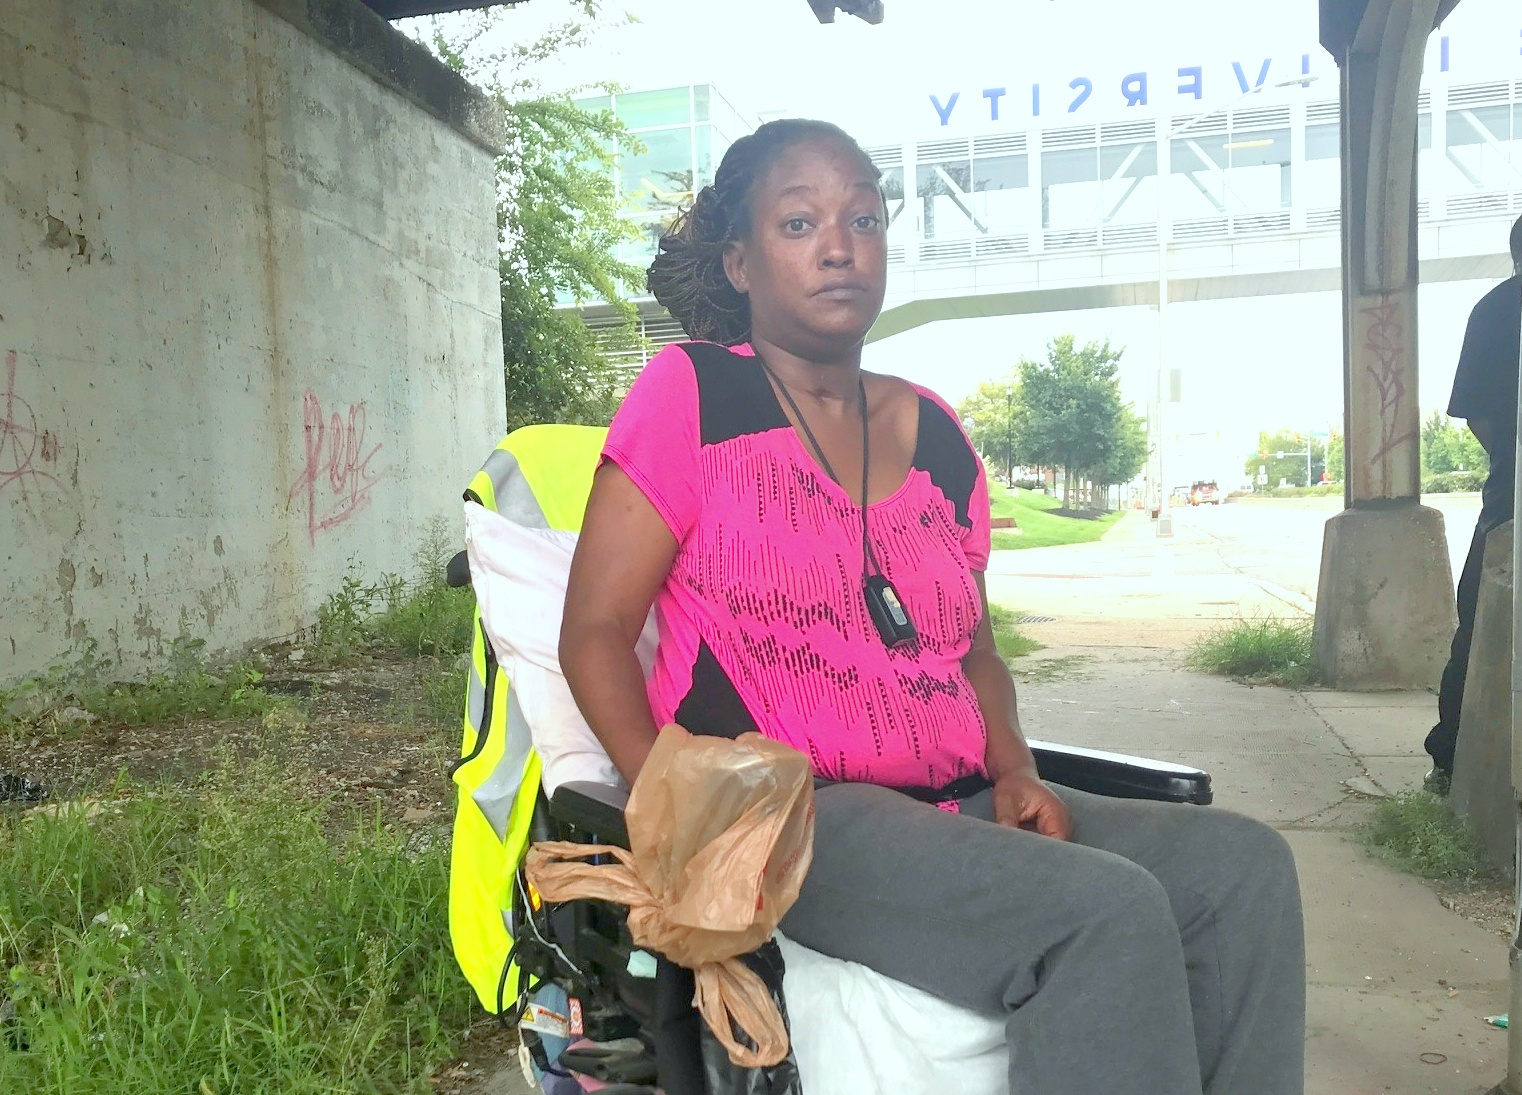 Equanna Fisher, who is wheelchair bound, lives at the Walbrook Mill Apartments just west of the CSX bridge. (Mark Reutter)